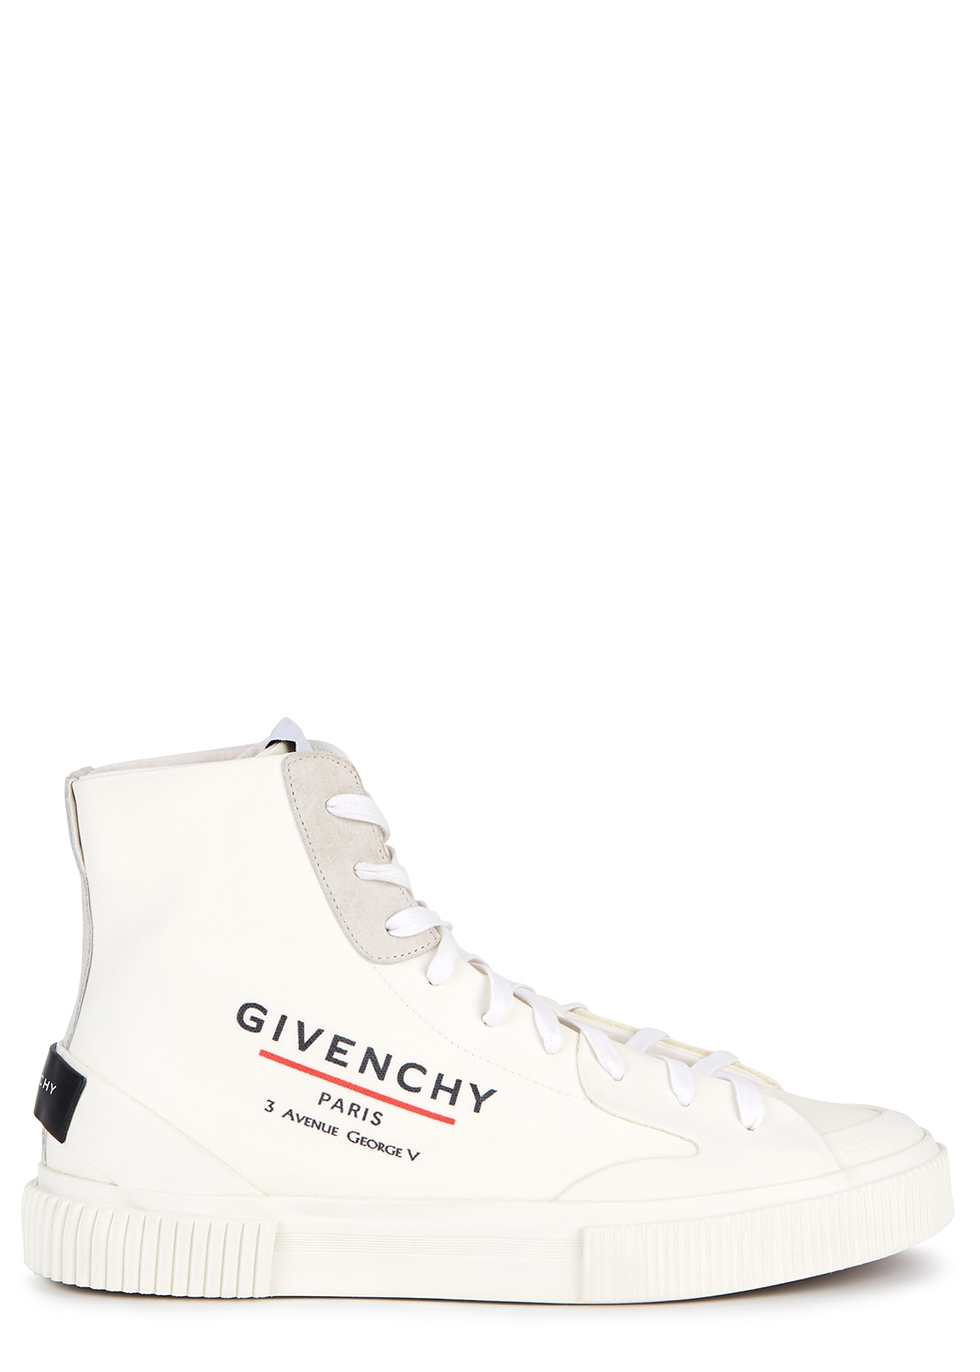 Givenchy Tennis off-white coated canvas